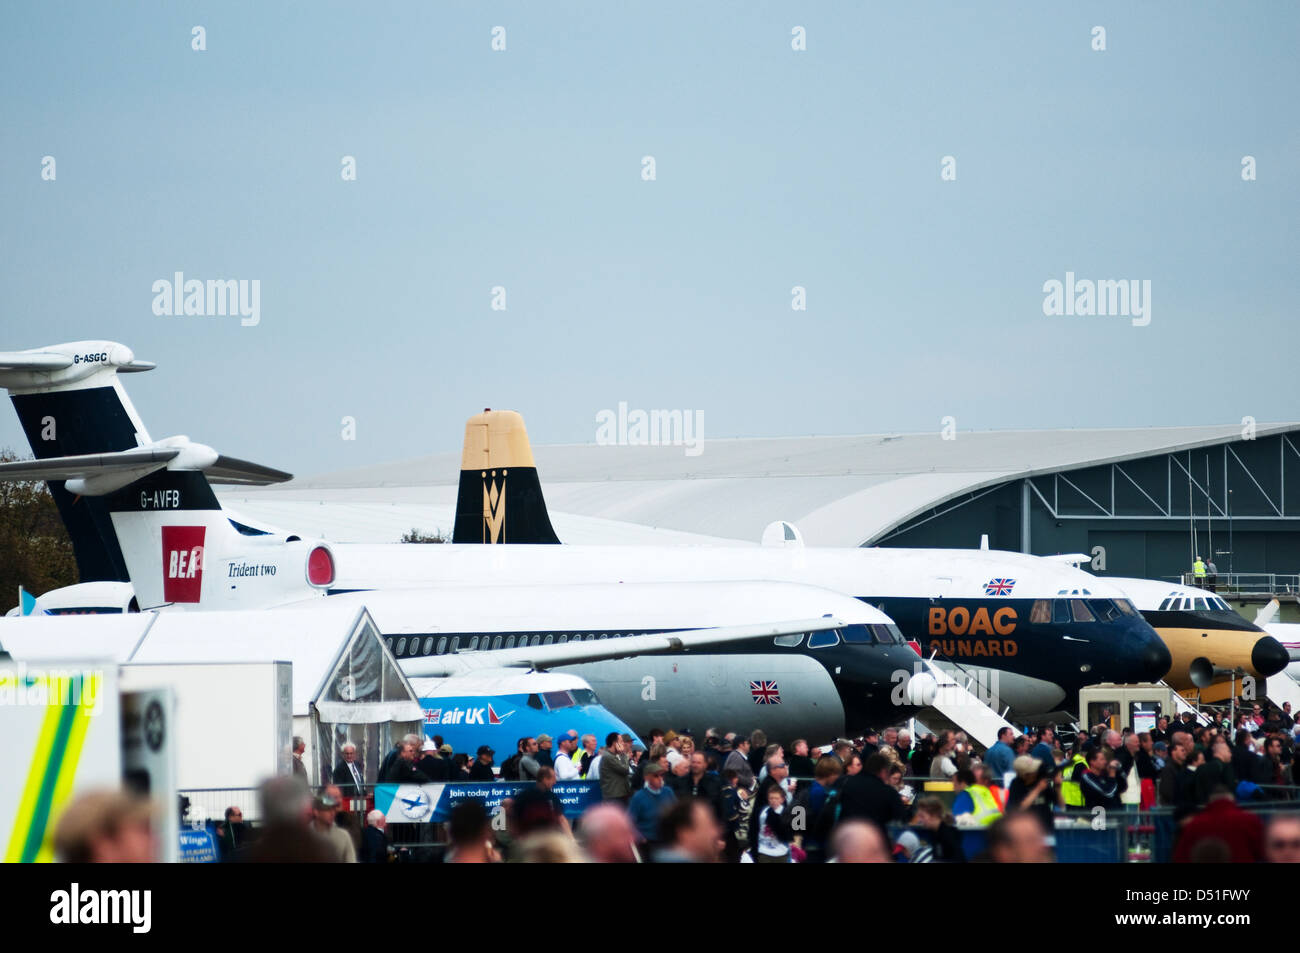 Landscape image showing large crowds of people and several aircraft at an air show in the UK. - Stock Image